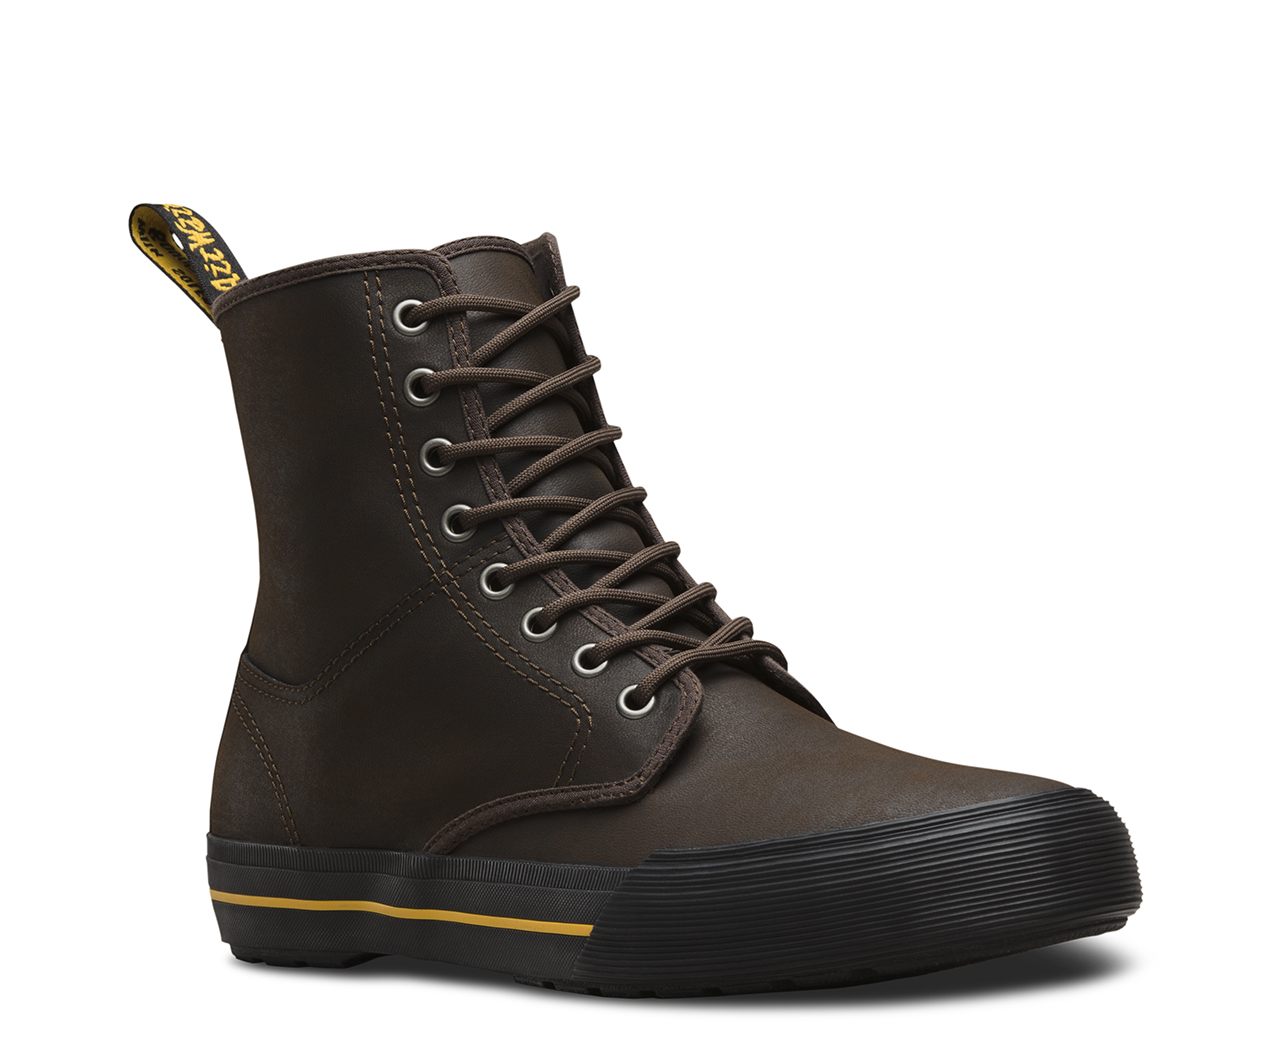 Unisex Adults Winsted Classic Boots Dr. Martens Outlet For Sale Discount Ebay New Styles For Sale axWQX